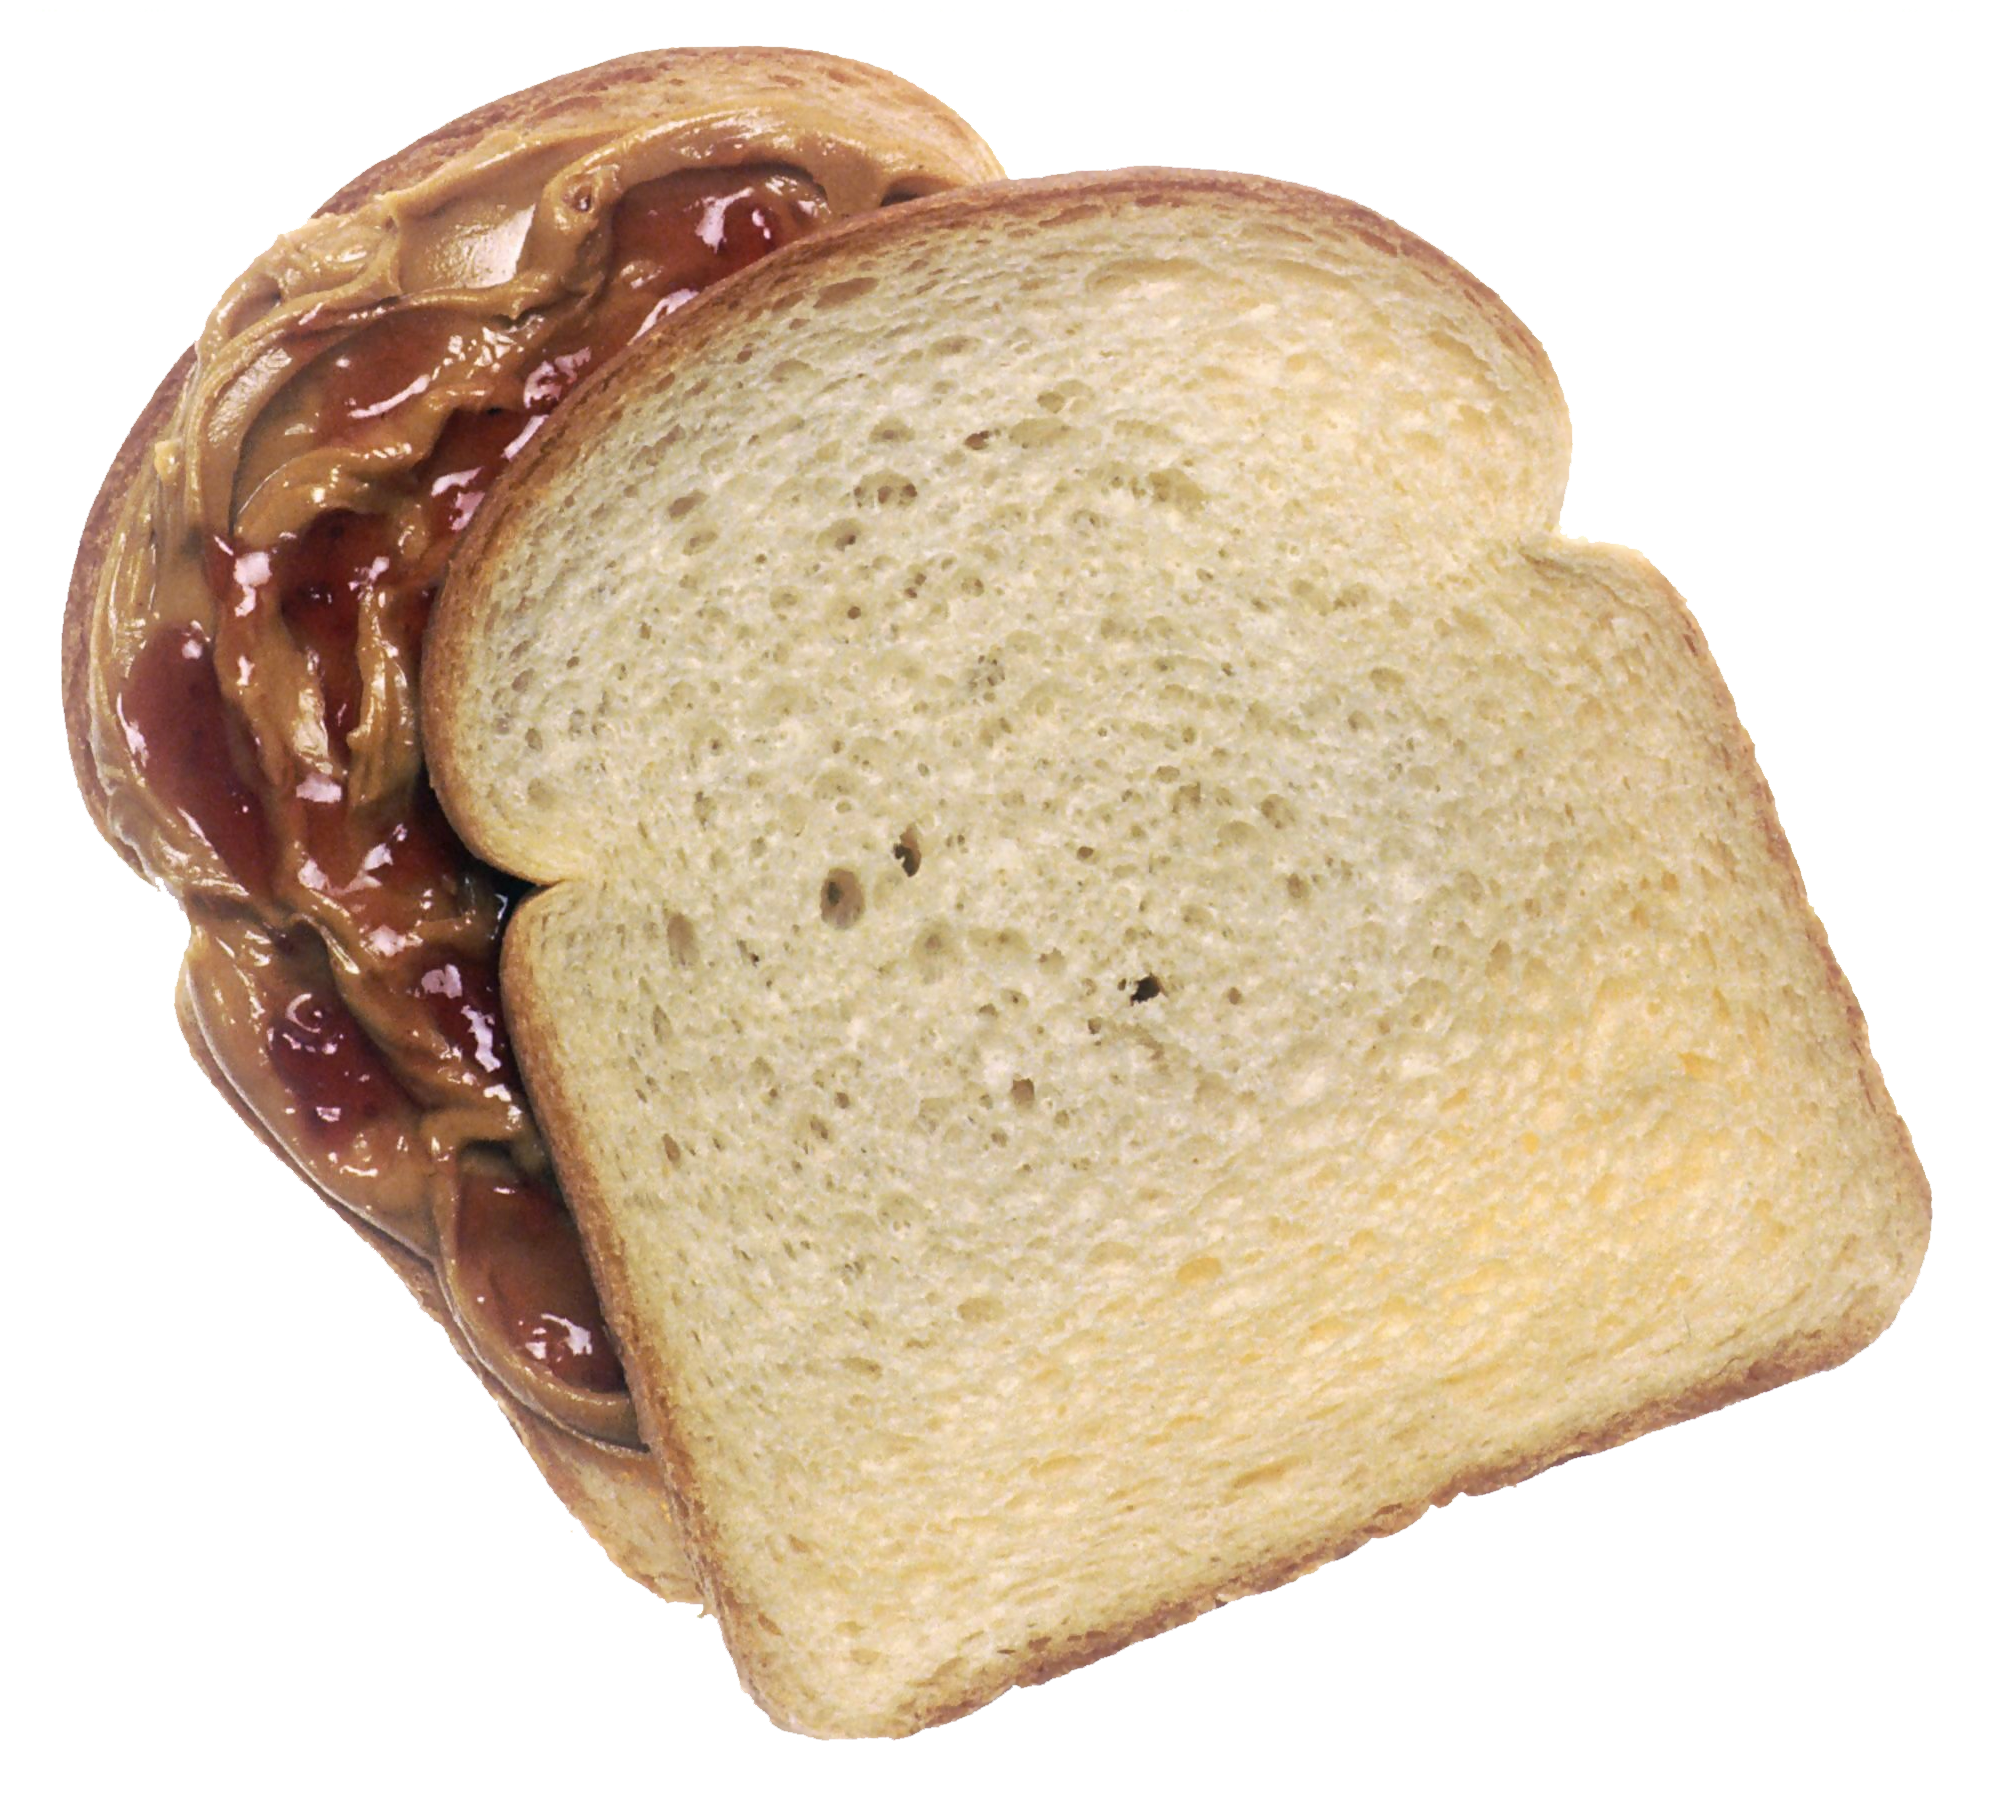 Peanut butter and jelly public domain free clipart banner free library File:PBJ.png - Wikimedia Commons banner free library